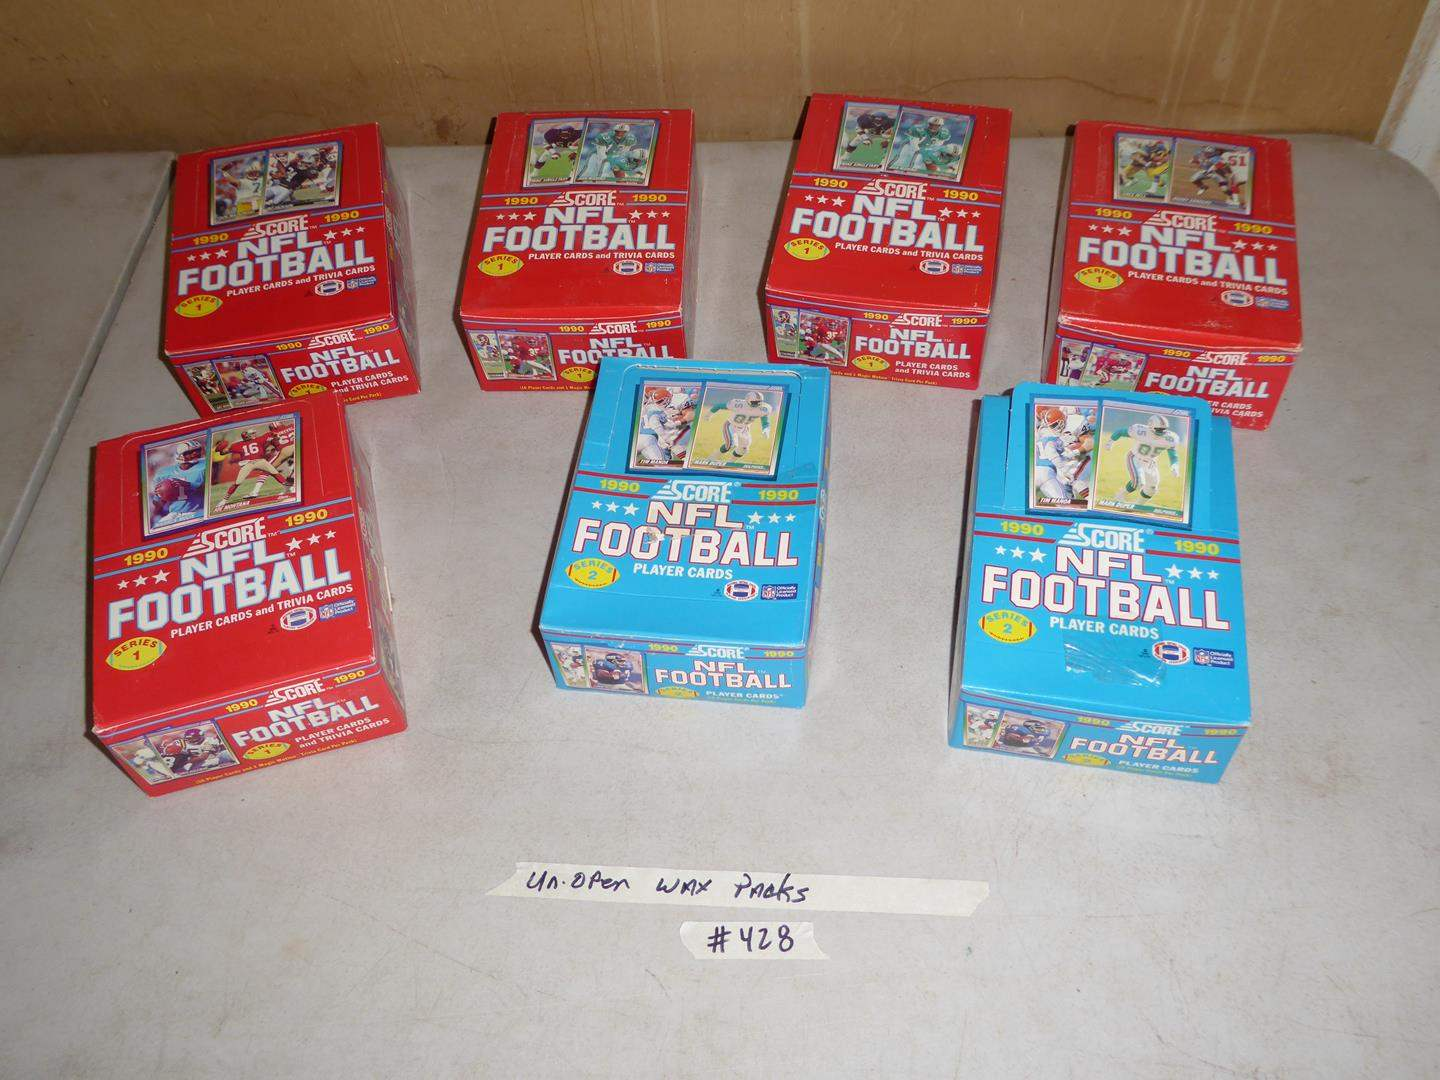 Lot # 428 - 7 Boxes 1990 NFL Football Cards Unopened Wax Packs (main image)